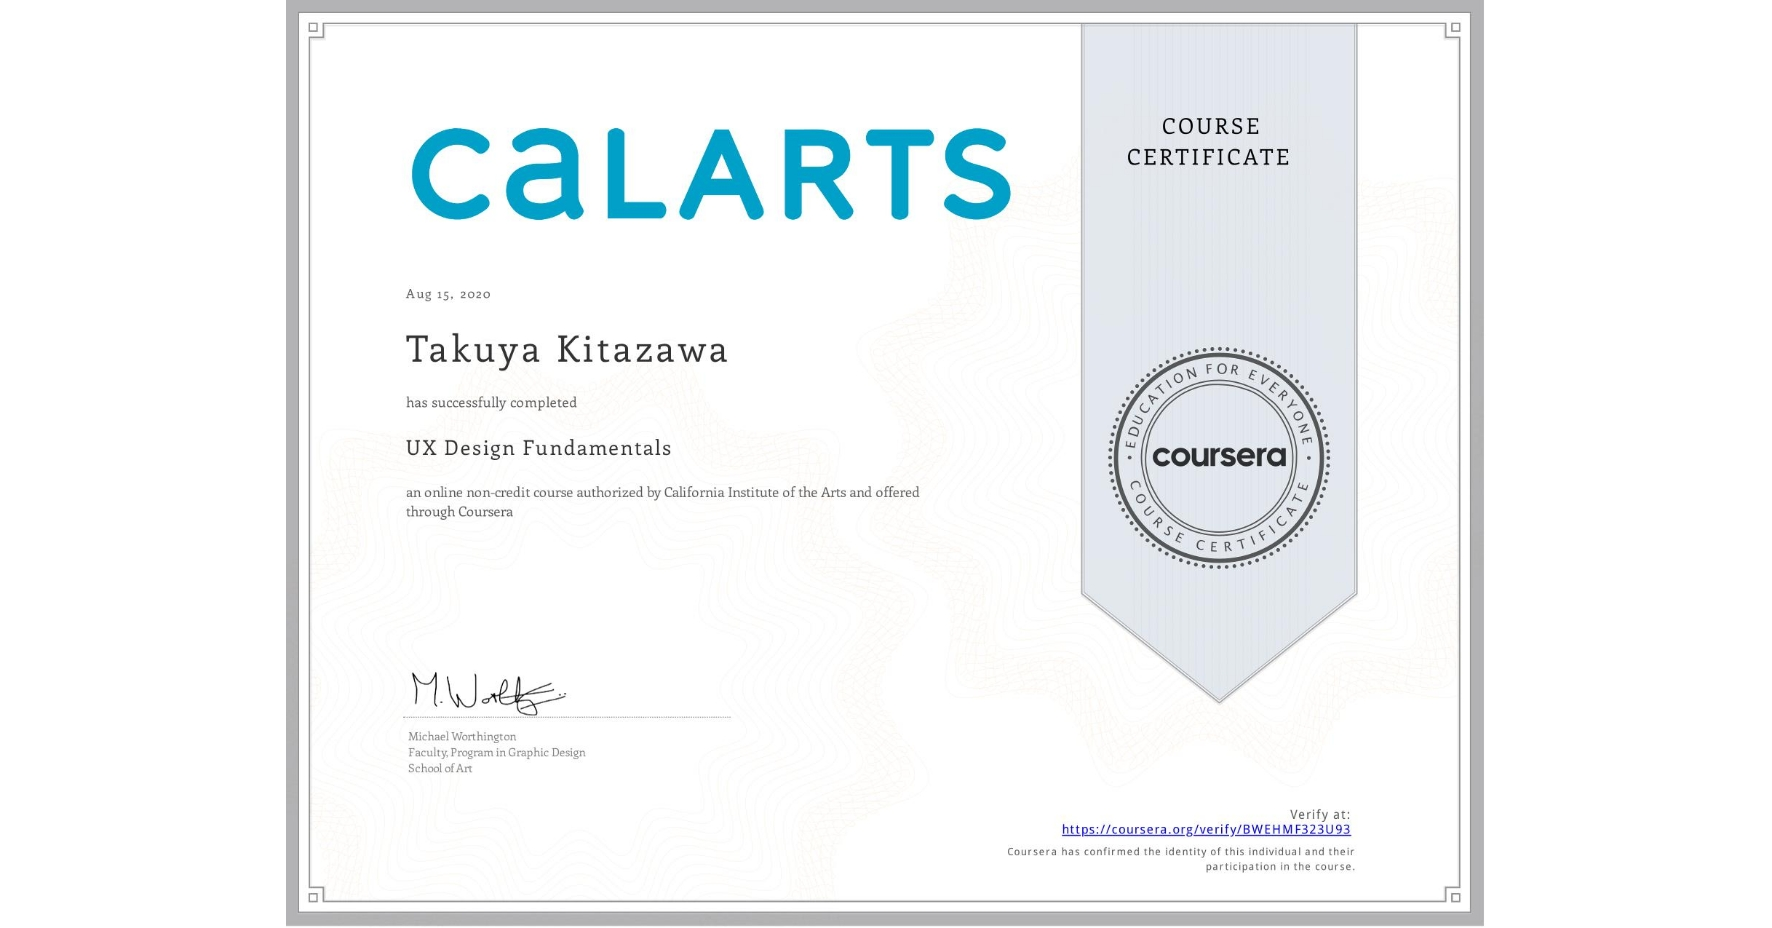 View certificate for Takuya Kitazawa, UX Design Fundamentals, an online non-credit course authorized by California Institute of the Arts and offered through Coursera